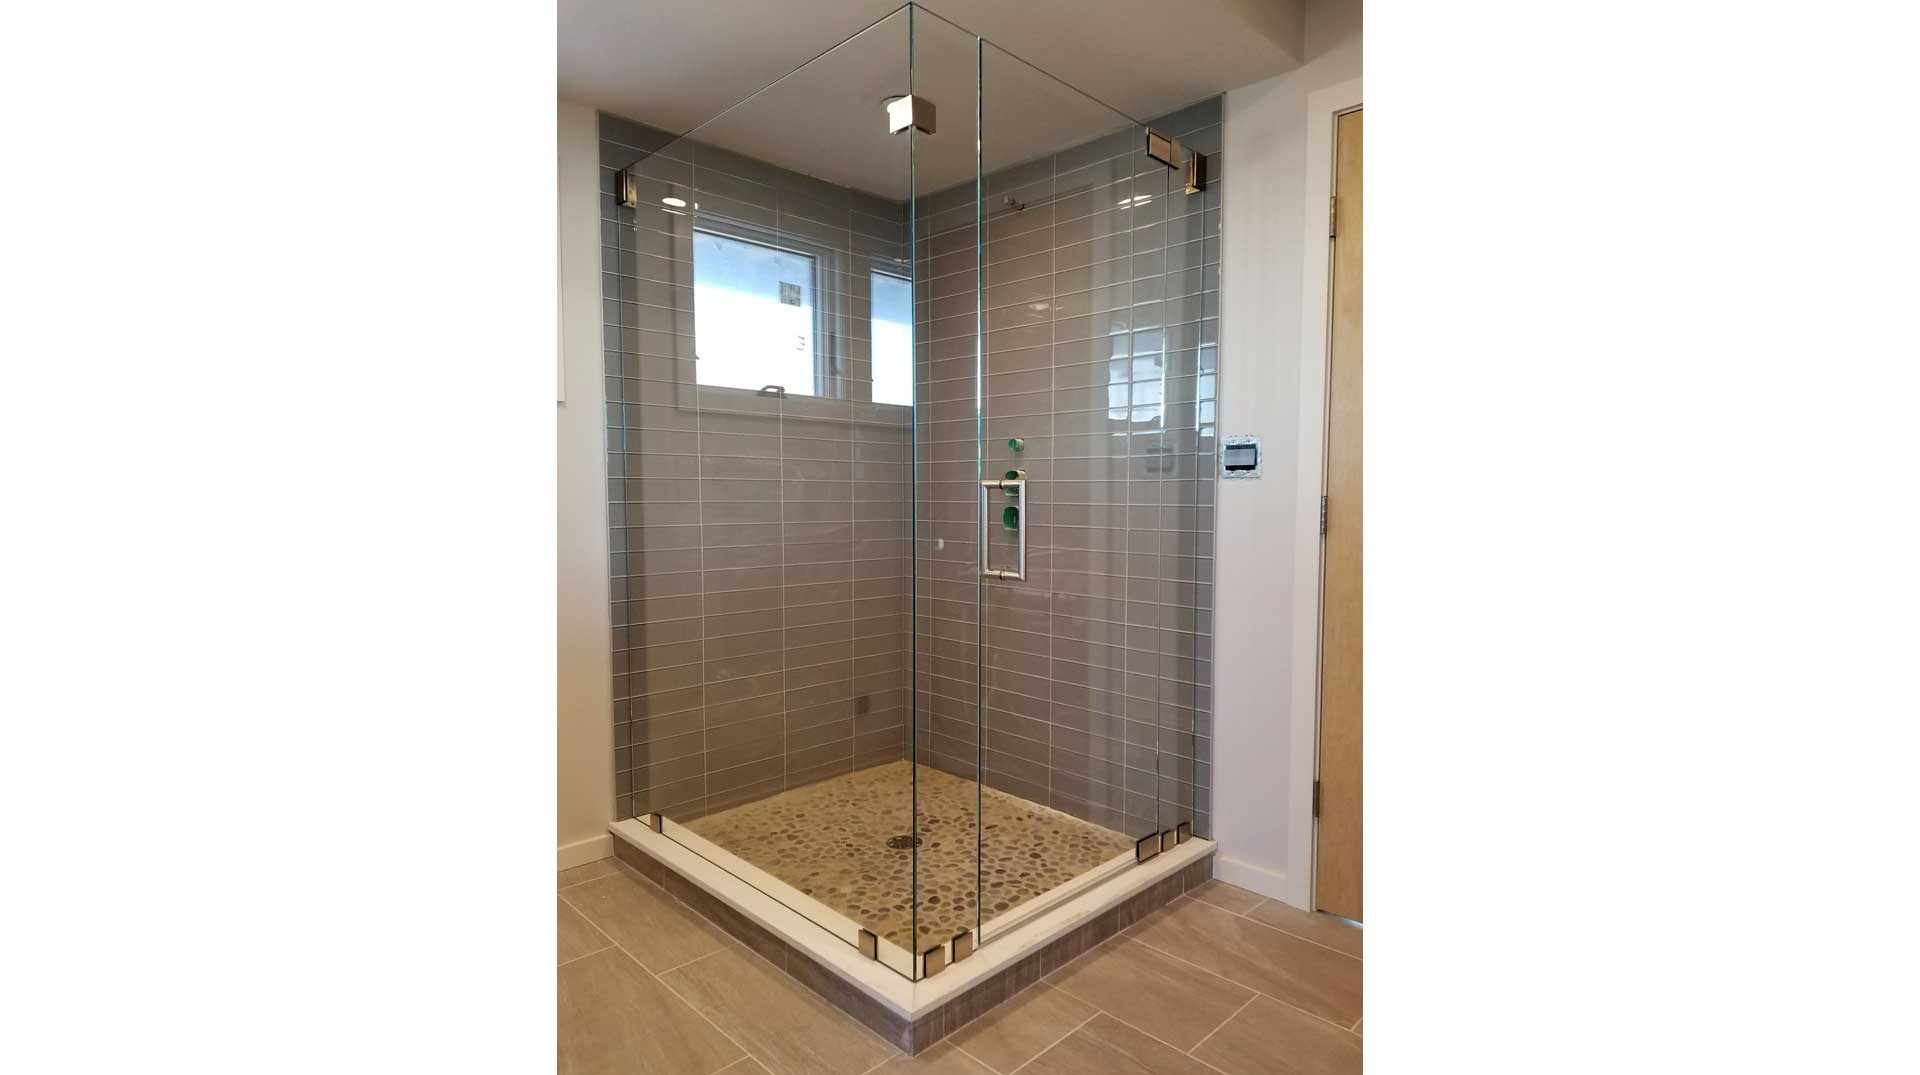 Frameless Glass Shower Enclosure On Long Beach In Plymouth MA - Bathroom remodeling plymouth ma